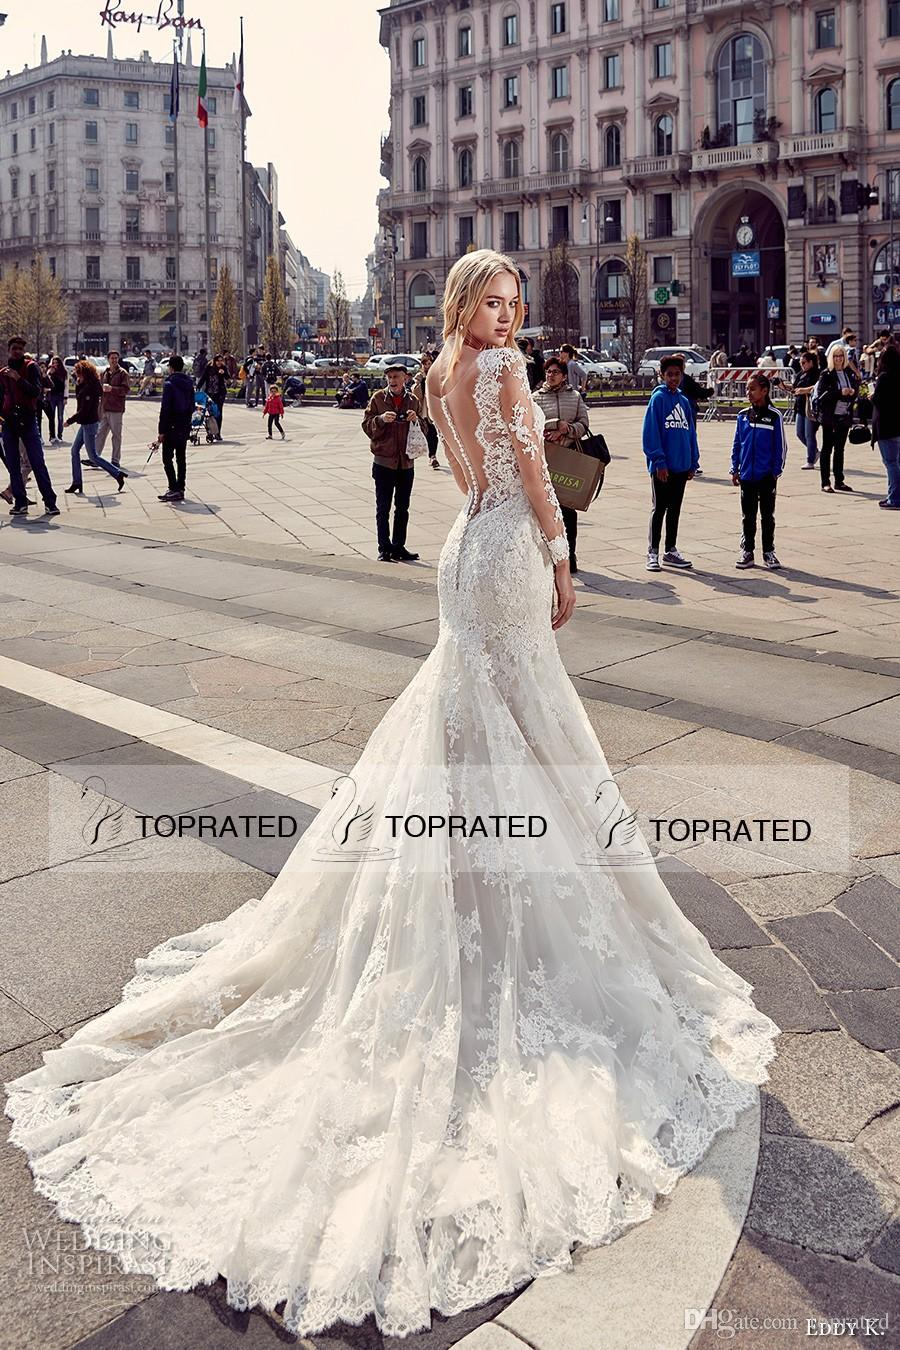 Eddy K 2017 Vintage Long Sleeved Mermaid Wedding Dresses with Deep Plunging V Neckline Fit and Flare Plus Size Bridal Gowns Brides Wear